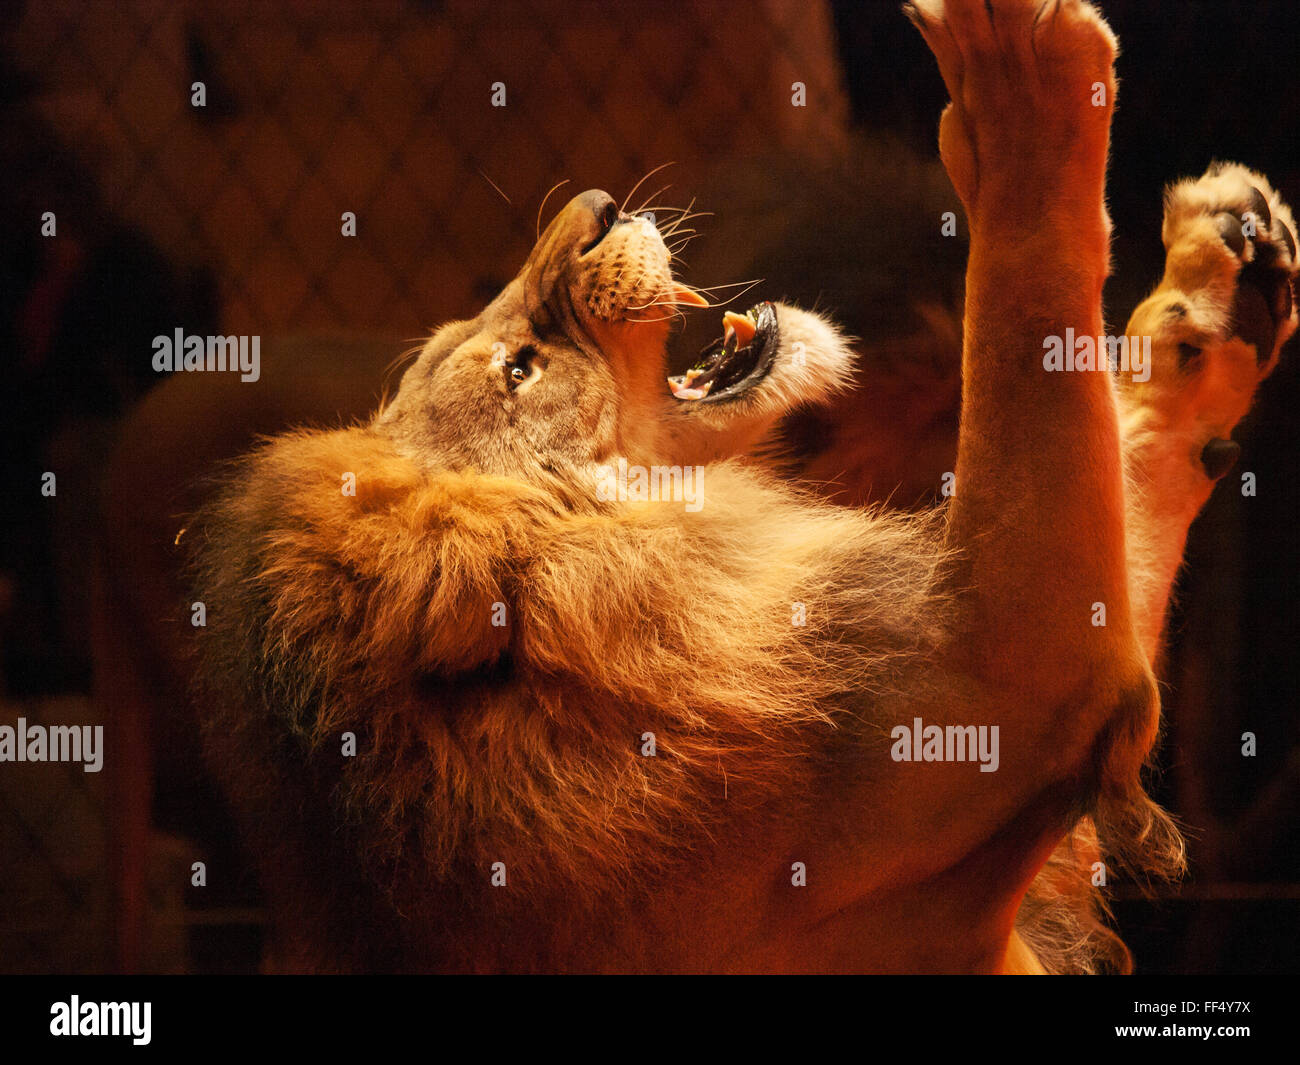 Lion raised up his paws and roaring upward - Stock Image